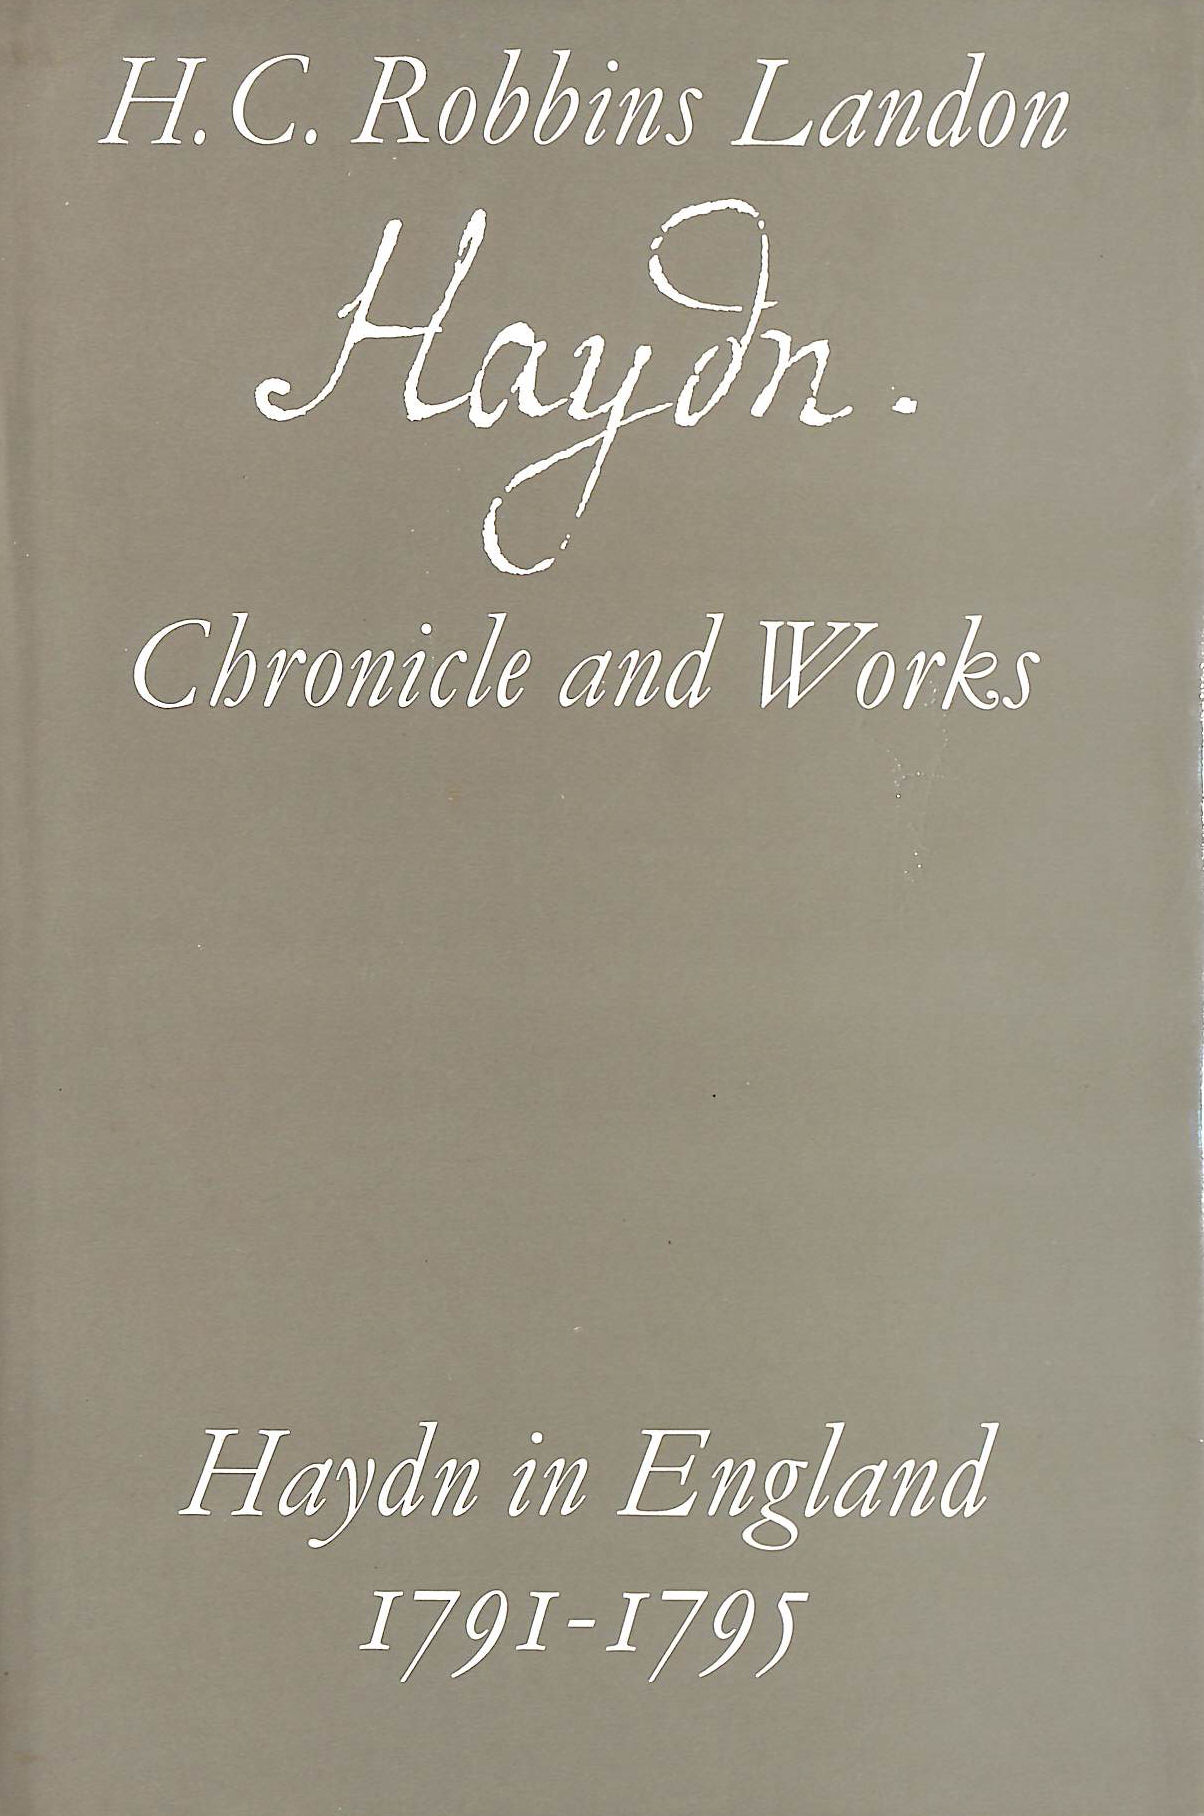 Image for Haydn: Chronicle and Works: Haydn in England 1791-1795: Haydn in England, 1791-95